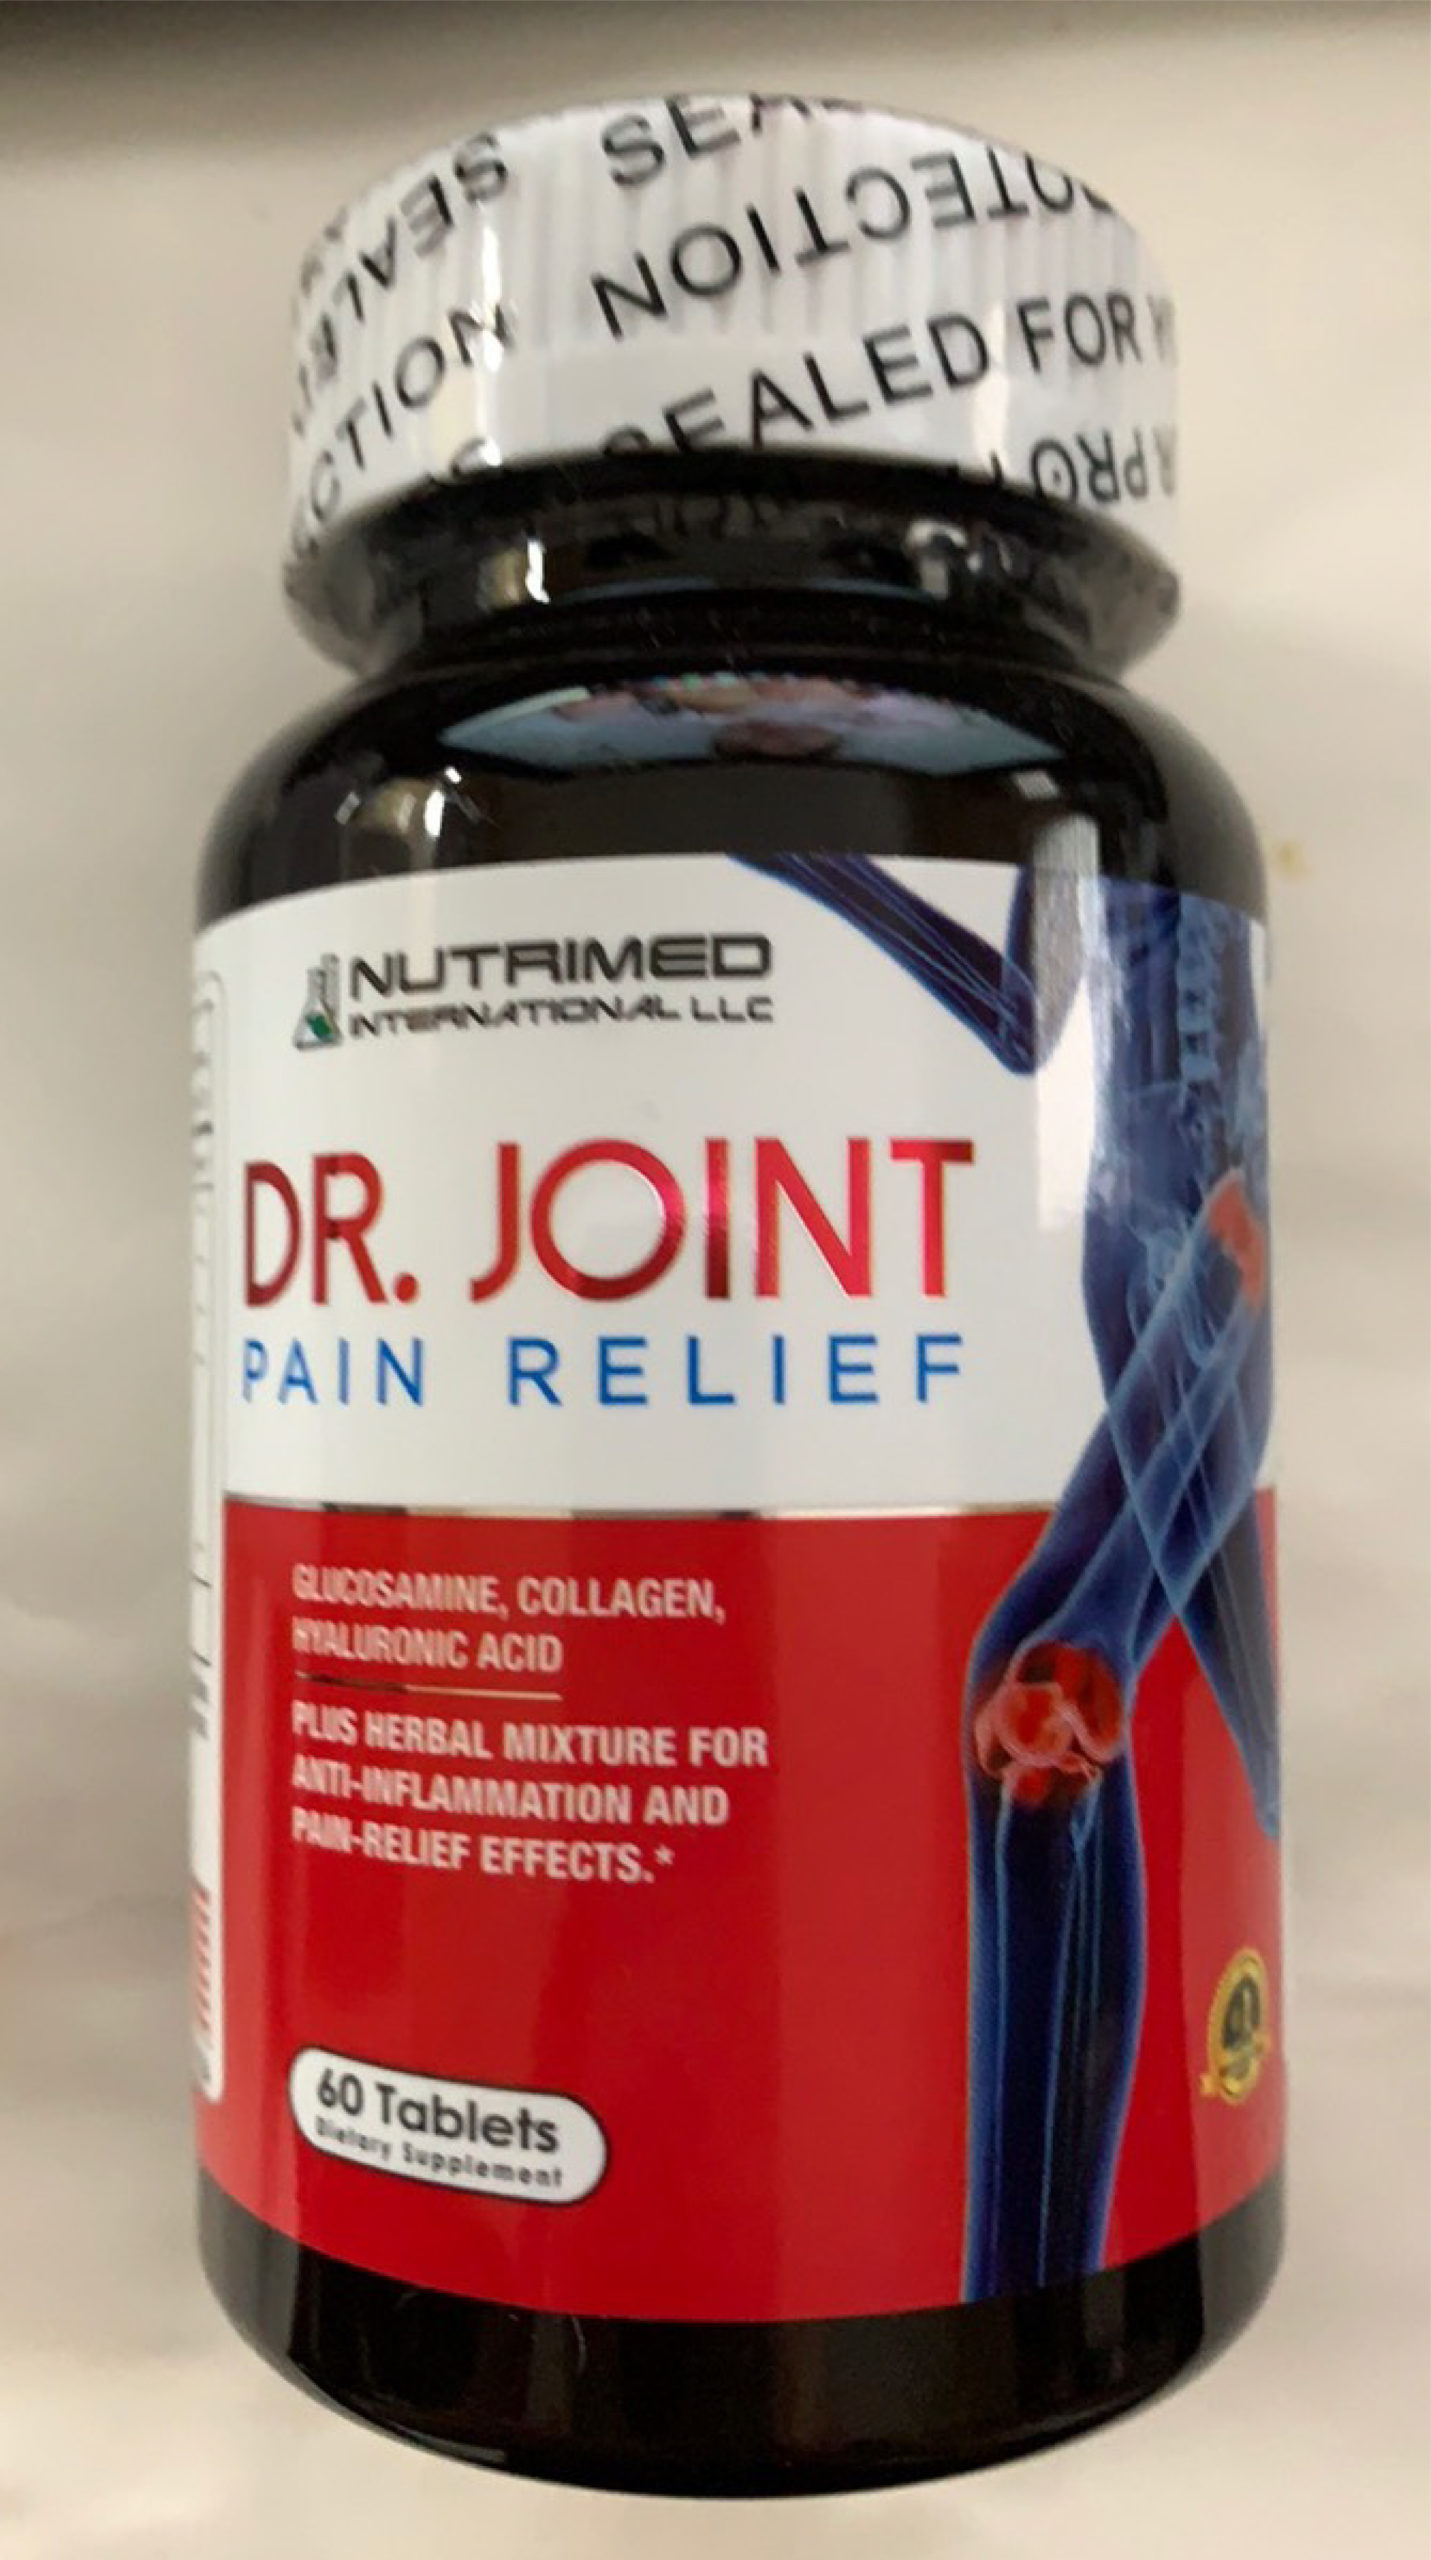 Dr. Joint Pain Relief